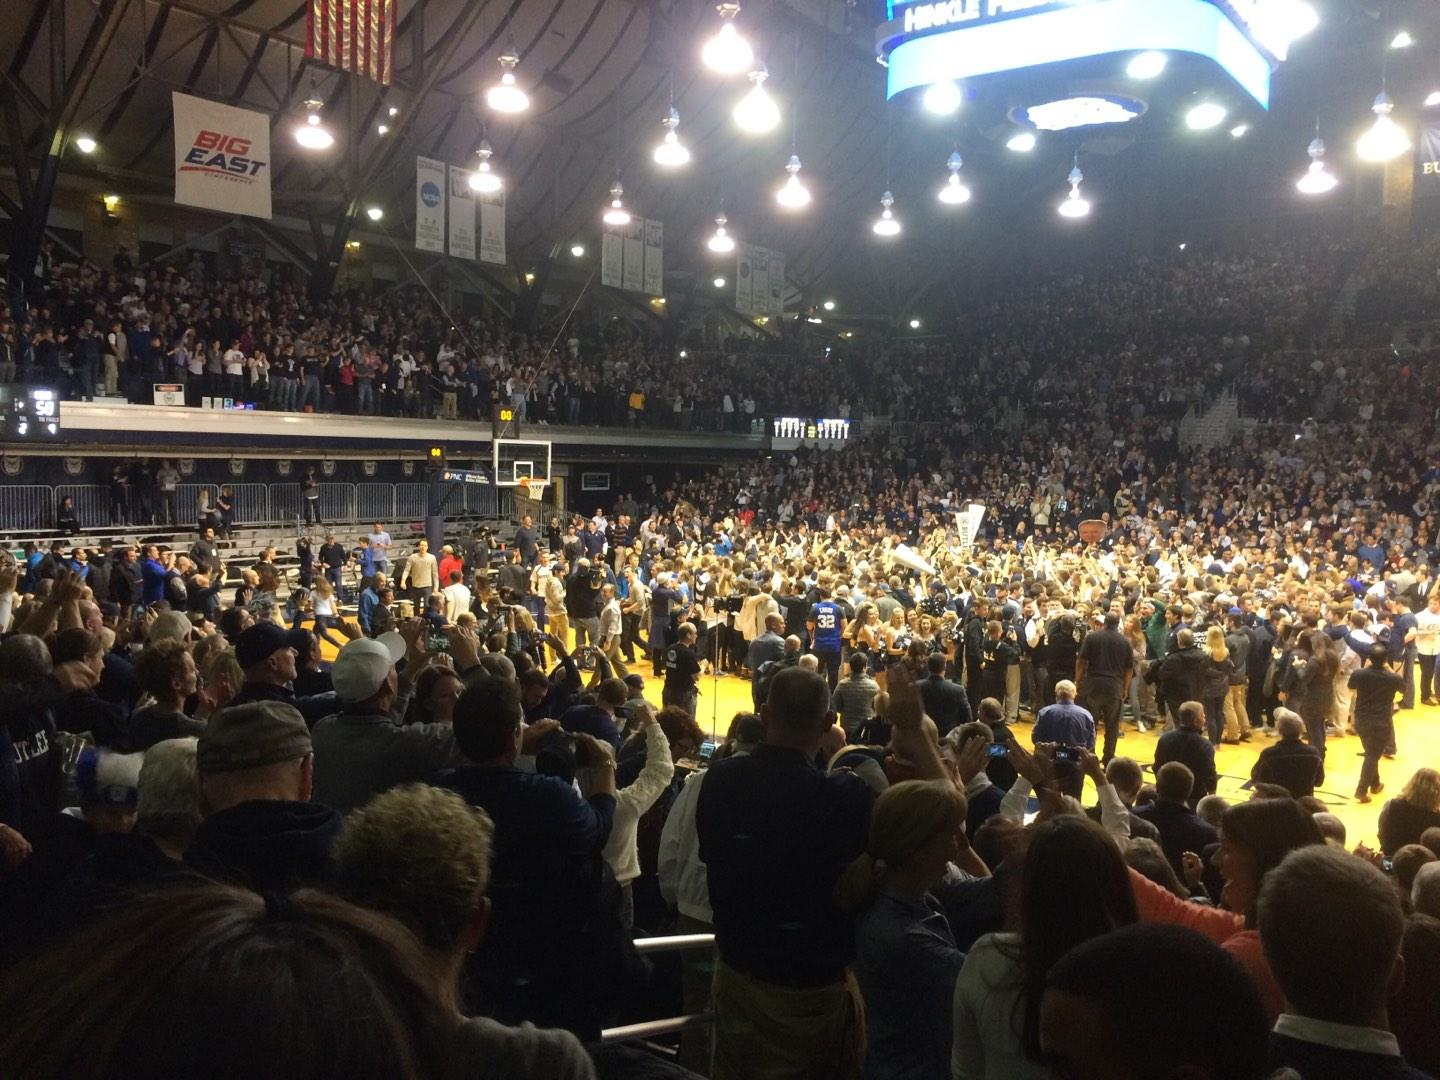 Hinkle Fieldhouse Section 121 Row 11 Seat 12